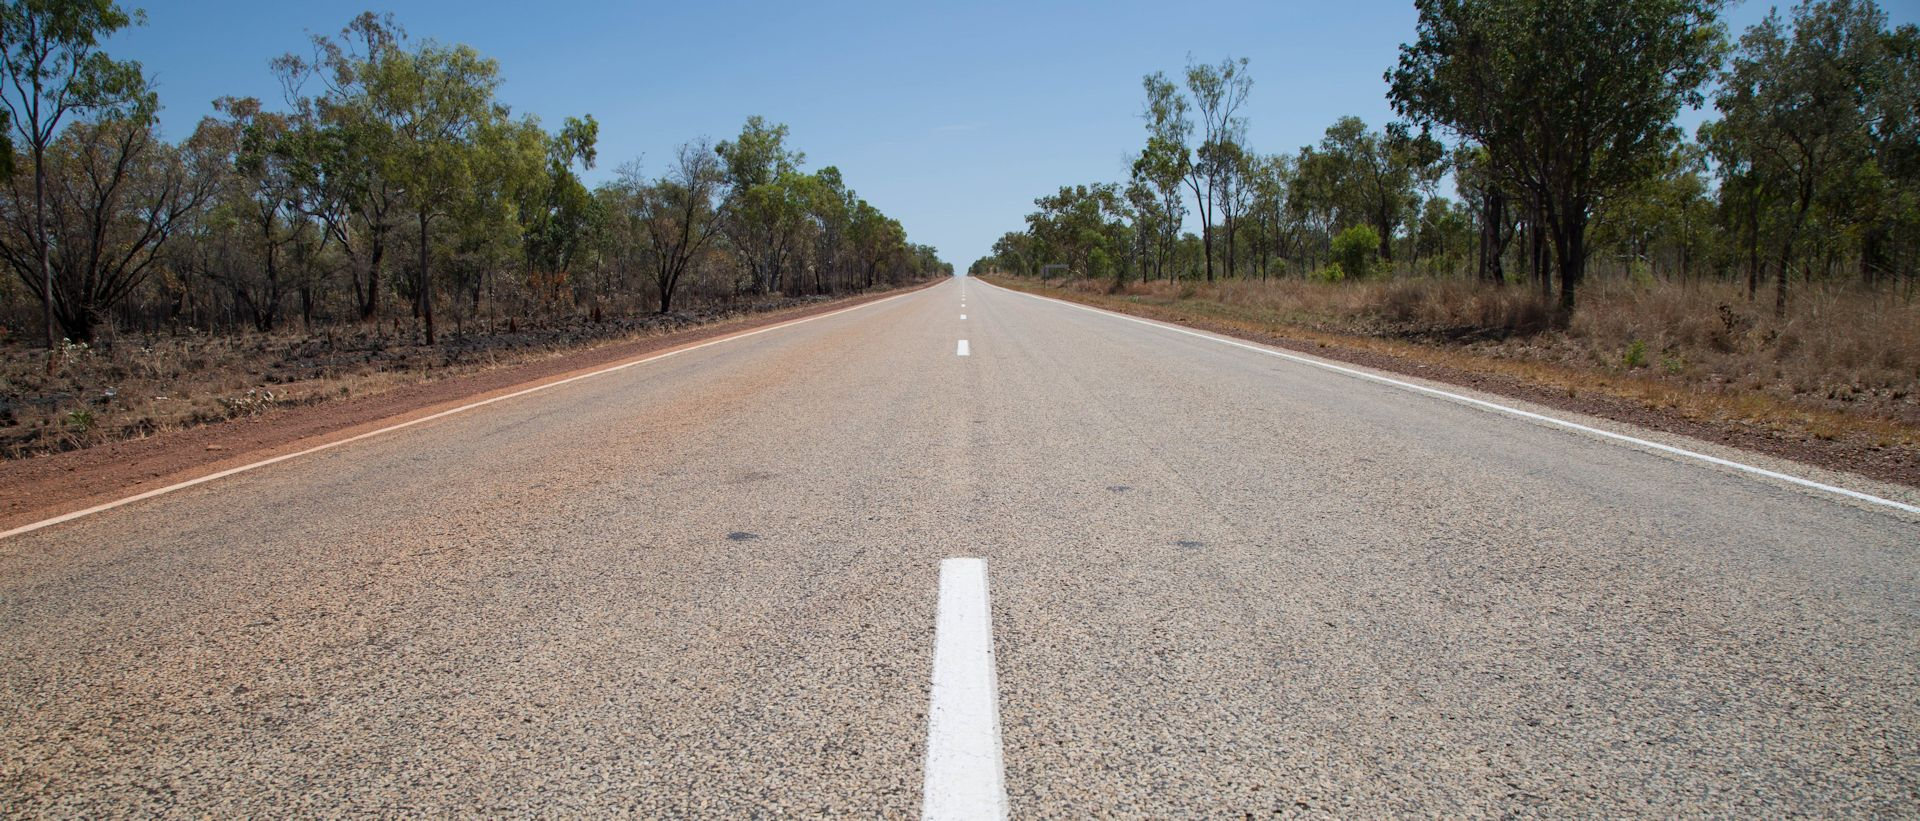 Roads of inland Australia